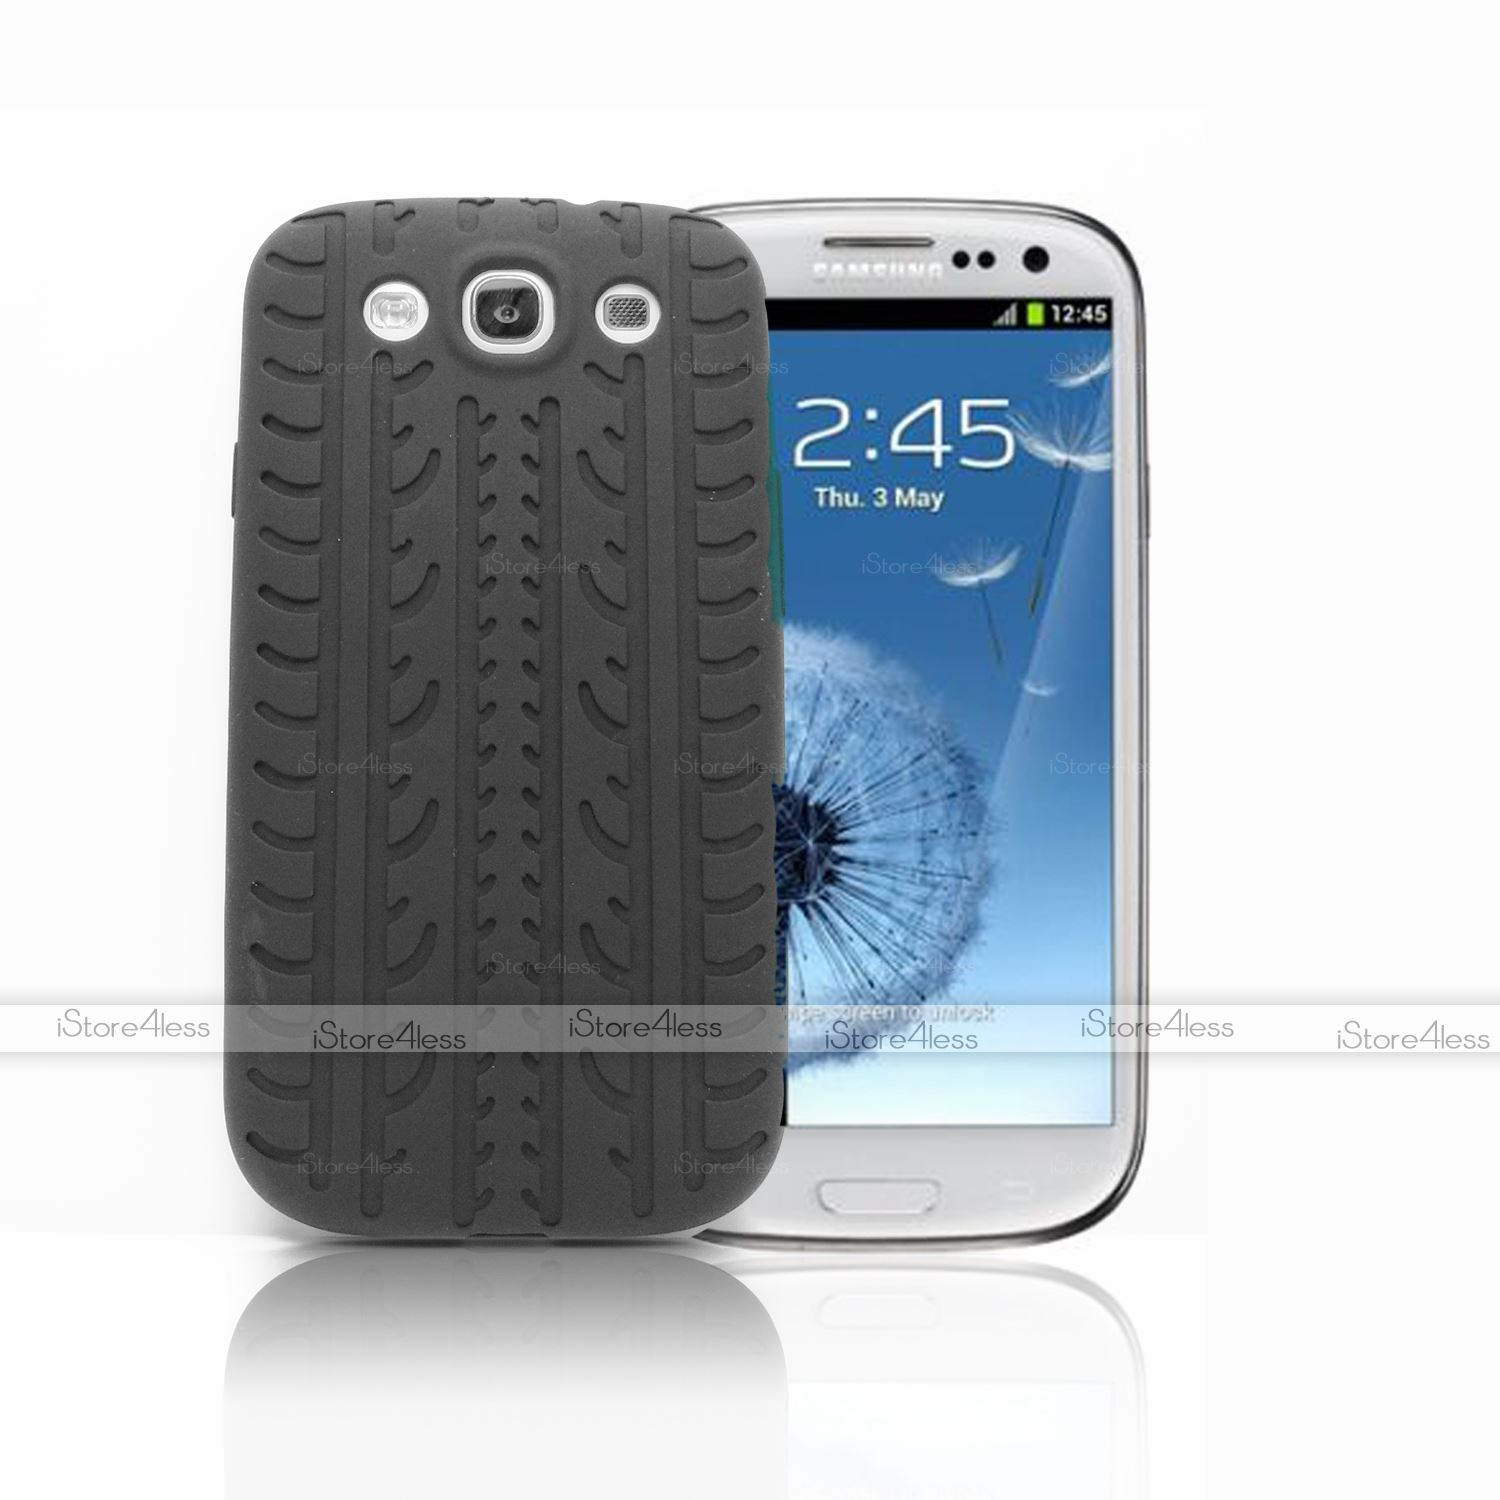 How To Install Stock Rom On Samsung Galaxy S3 S Iii Gt